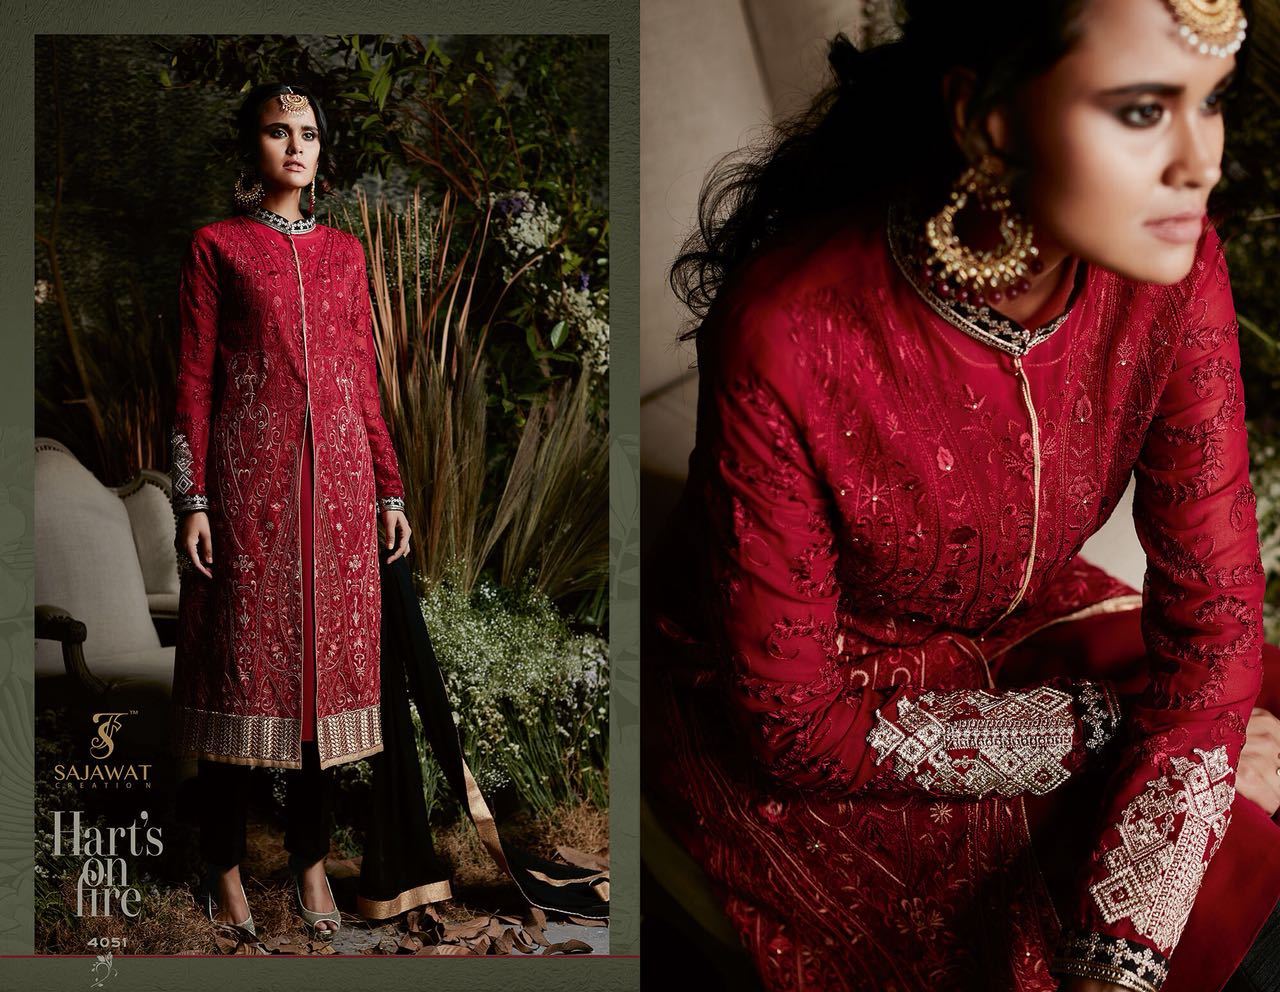 Sajawat Creation Taj Maria B Eid Collection 4051